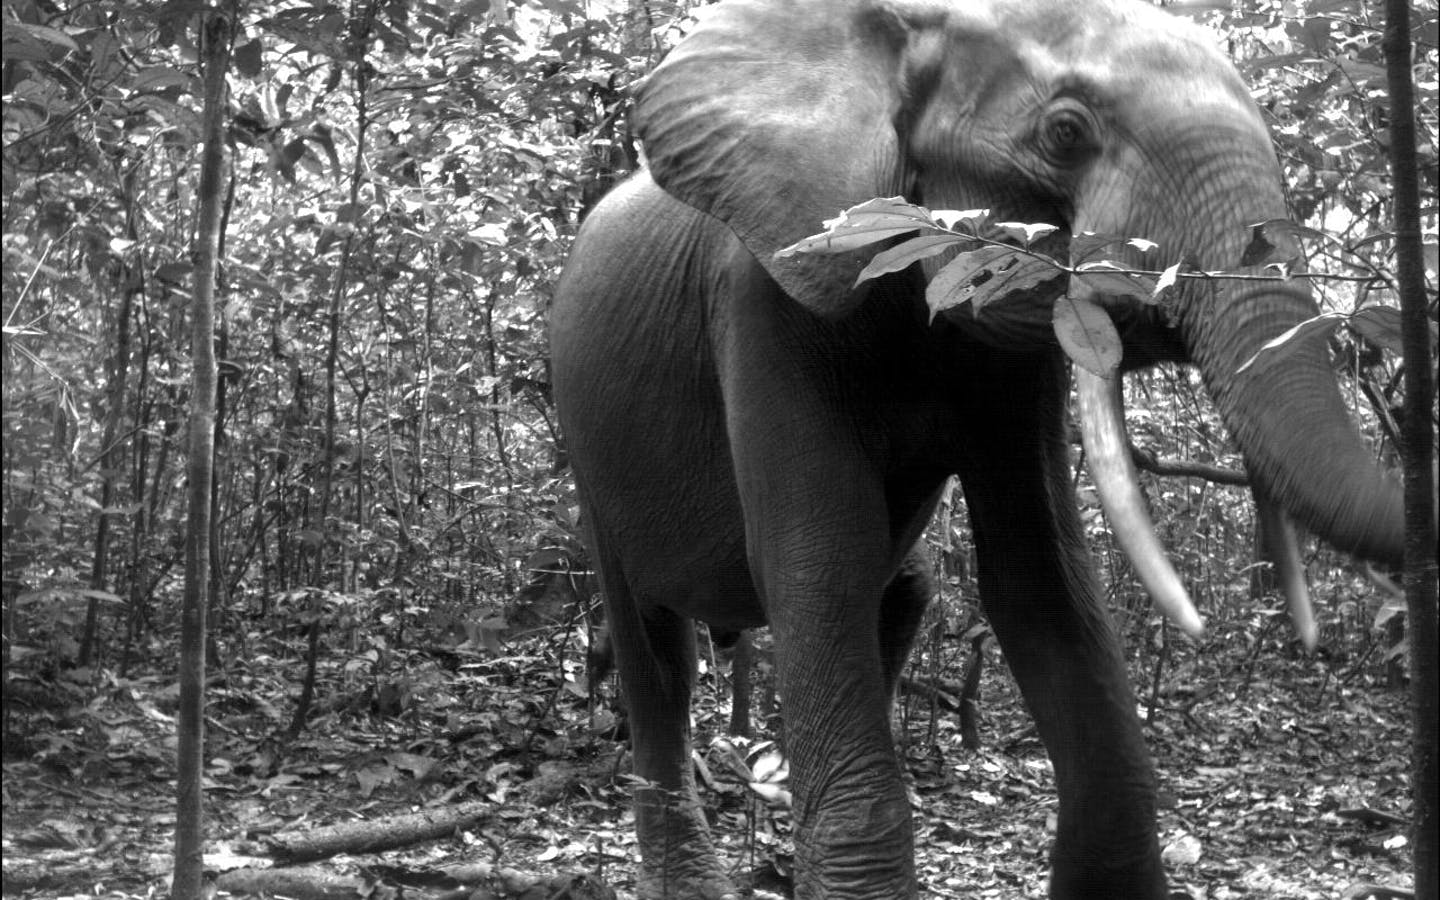 African forest elephant (Loxodonta cyclotis) from TEAM's site in Nouabale Ndoki National Park, Republic of Congo.